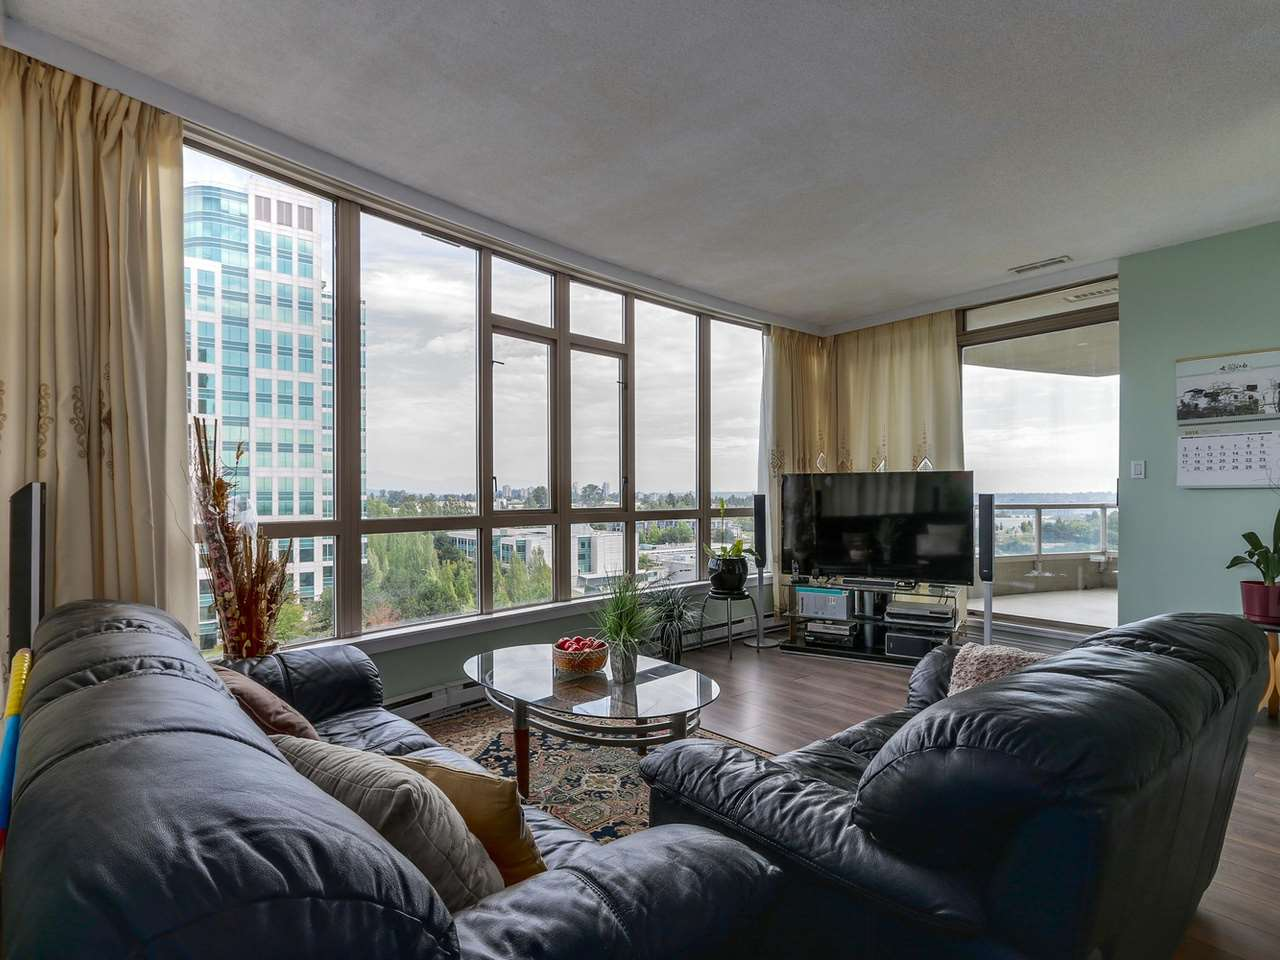 Photo 6: 1005 6888 STATION HILL Drive in Burnaby: South Slope Condo for sale (Burnaby South)  : MLS® # R2125491